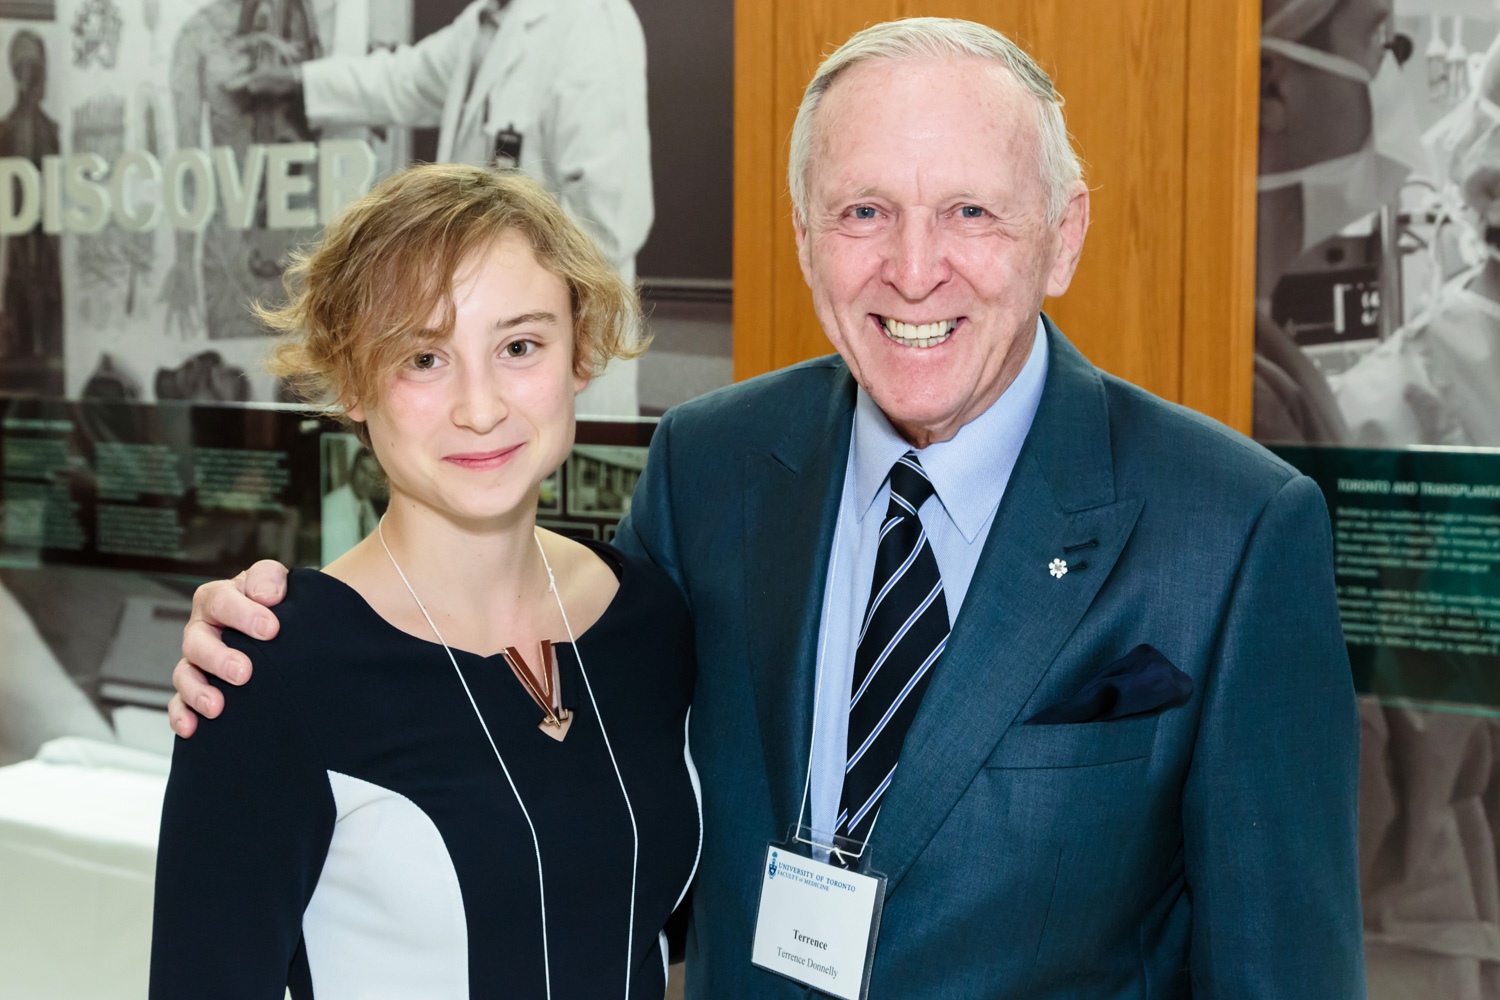 Hannah Kozlowski with Terrence Donnelly